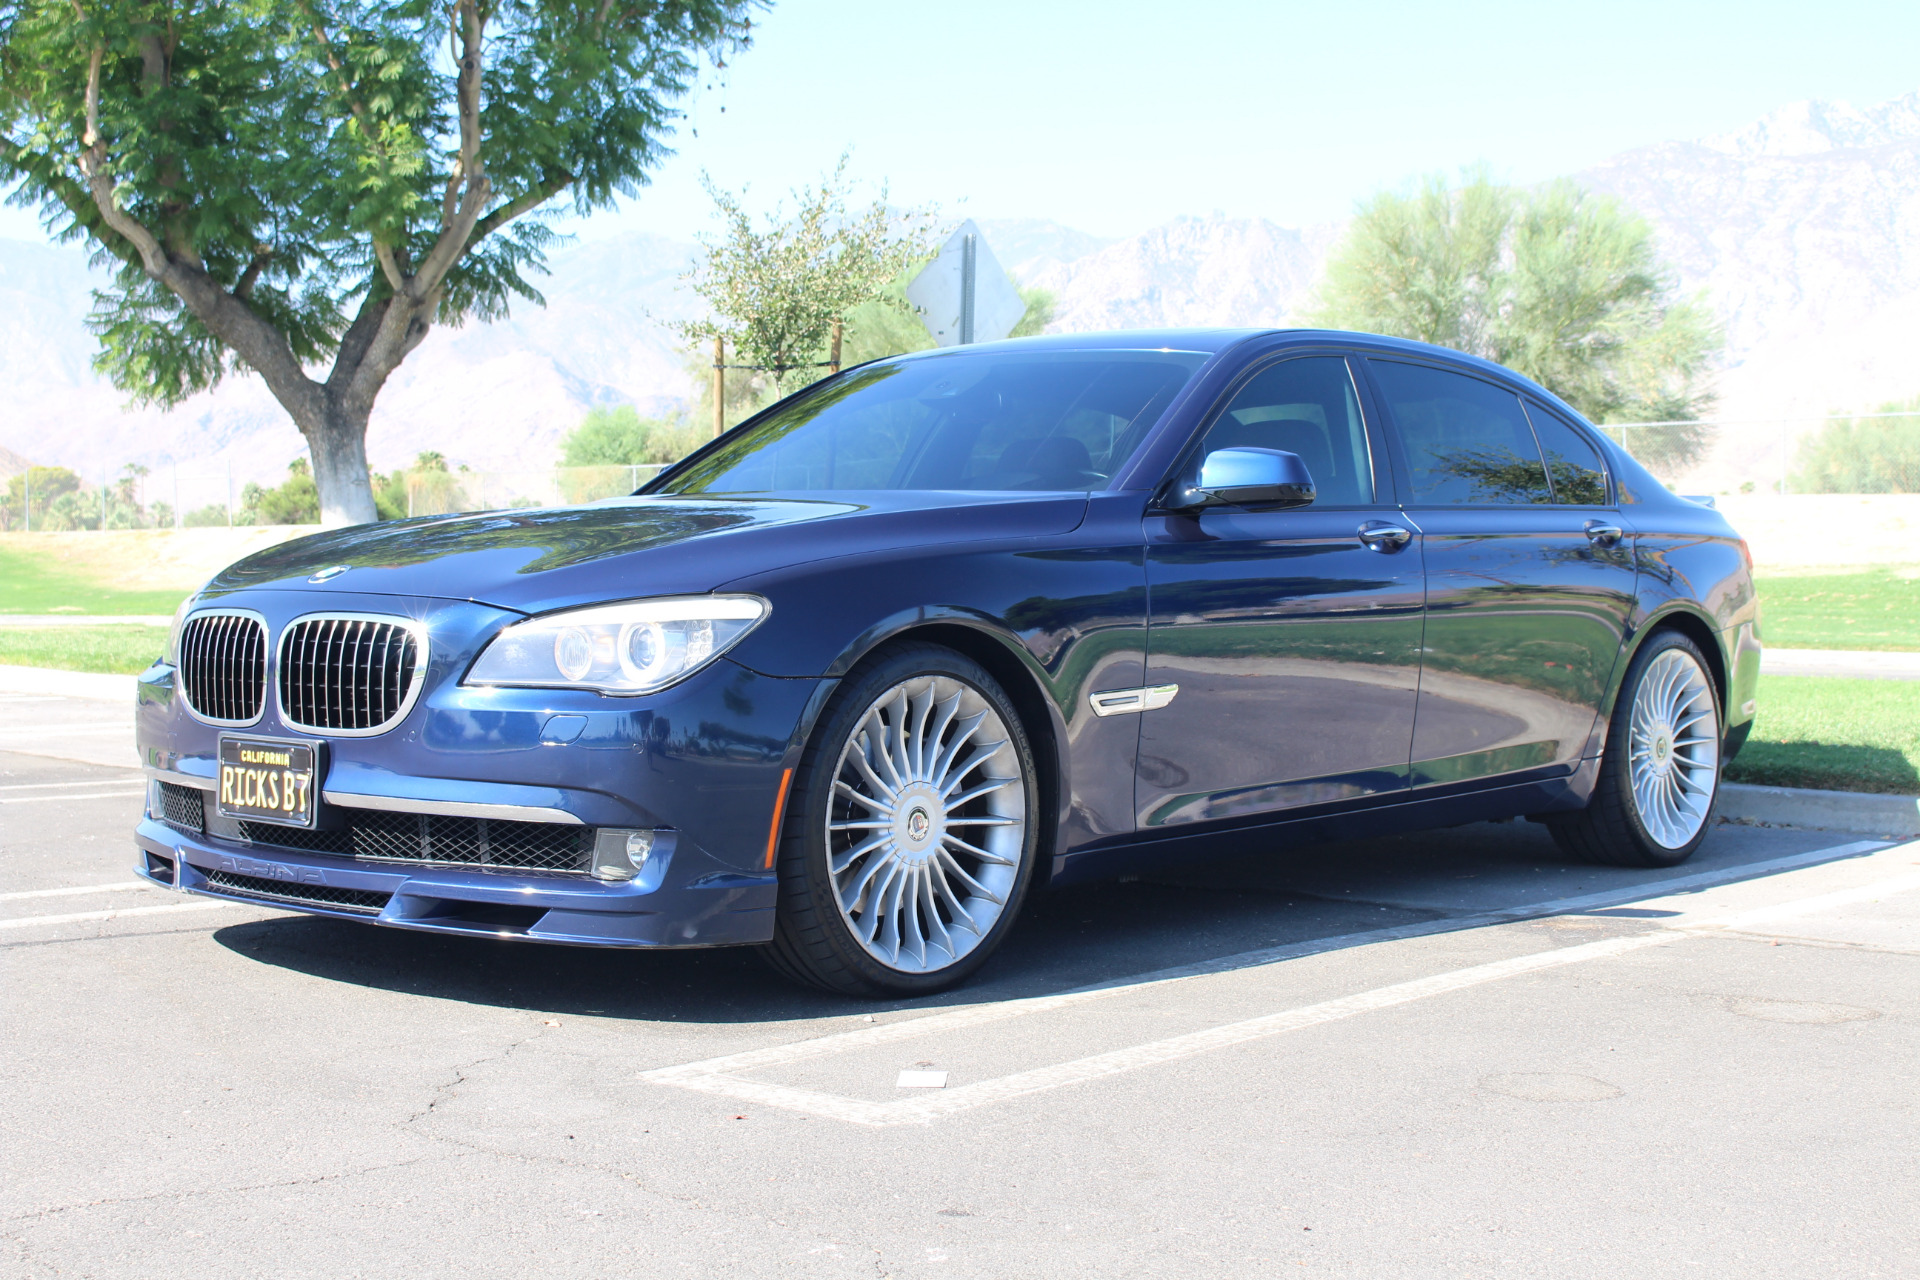 Used-2012-BMW-7-Series-ALPINA-B7-LWB